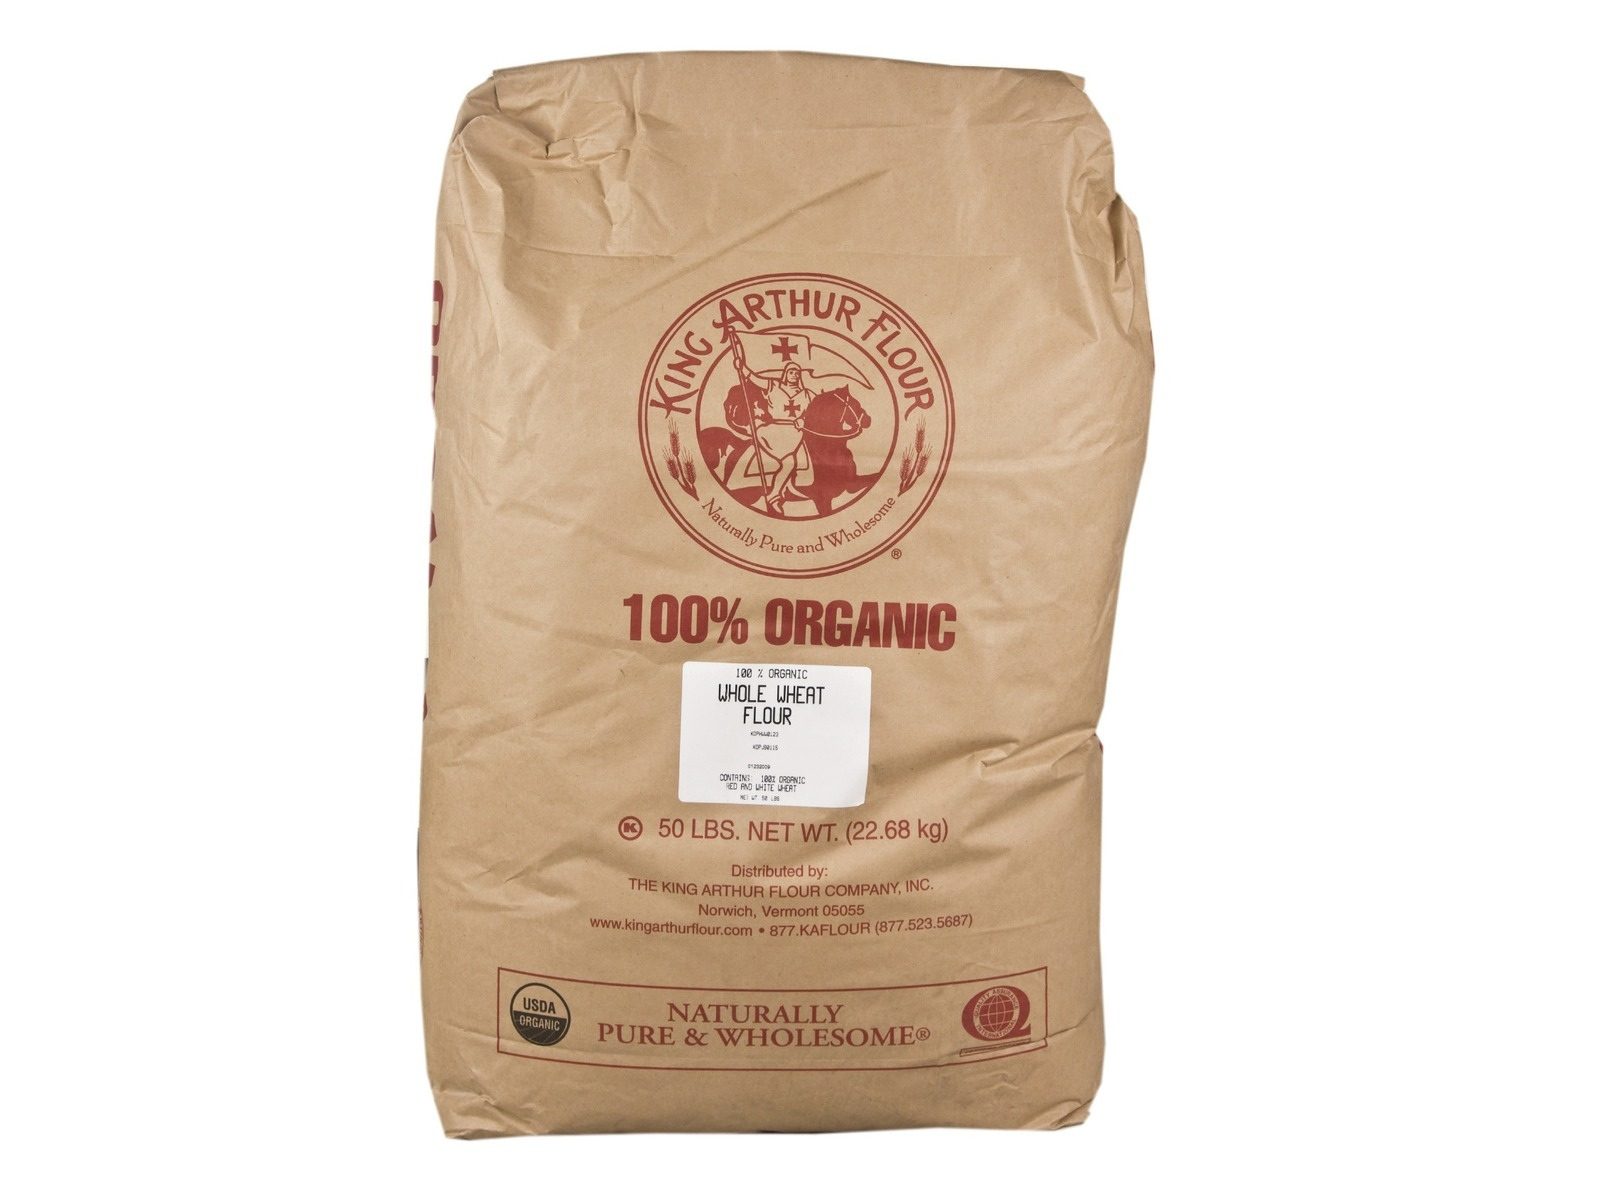 Organic Whole Wheat Flour 50lb - BULK - King Arthur | eBay